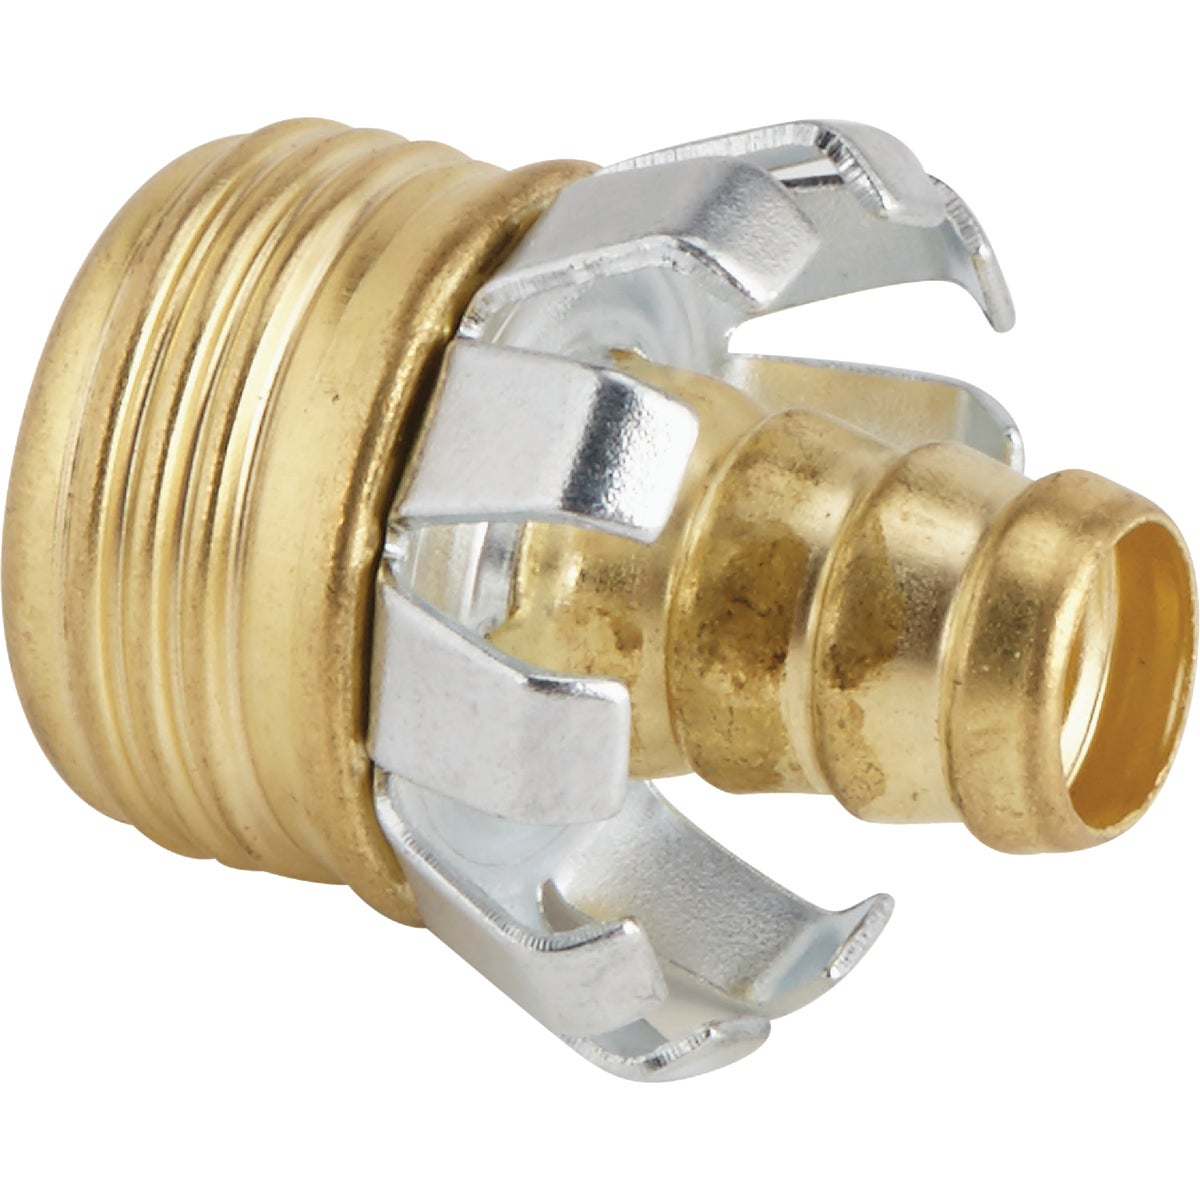 "1/2"" MALE BRASS HOSE END - DIBC12M by Bosch G W Gs"